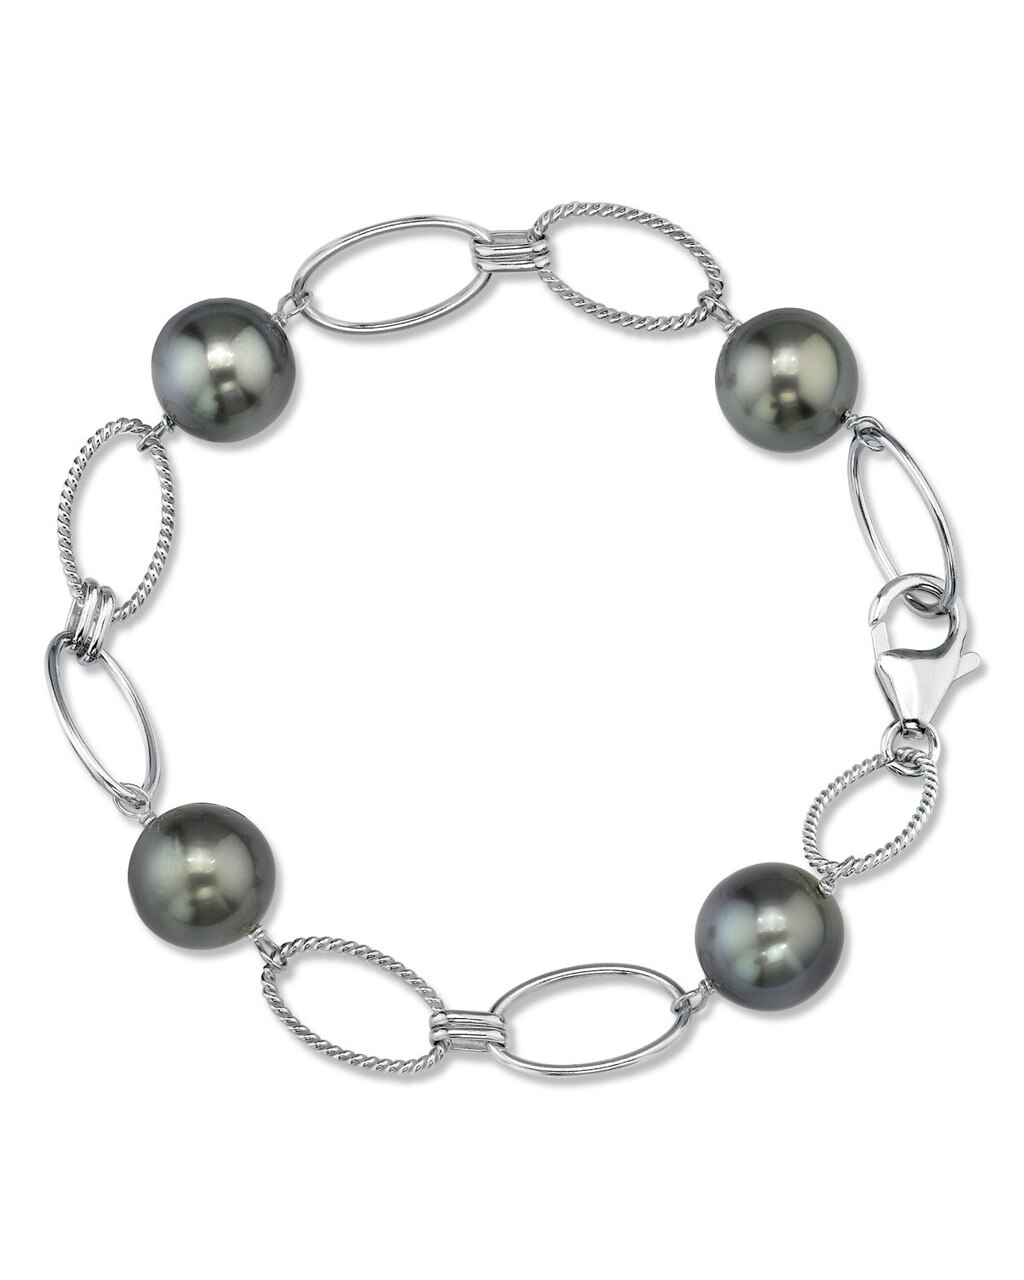 This exquisite bracelet features 10.0-11.0mm Tahitian South Sea pearls, handpicked for their radiant luster